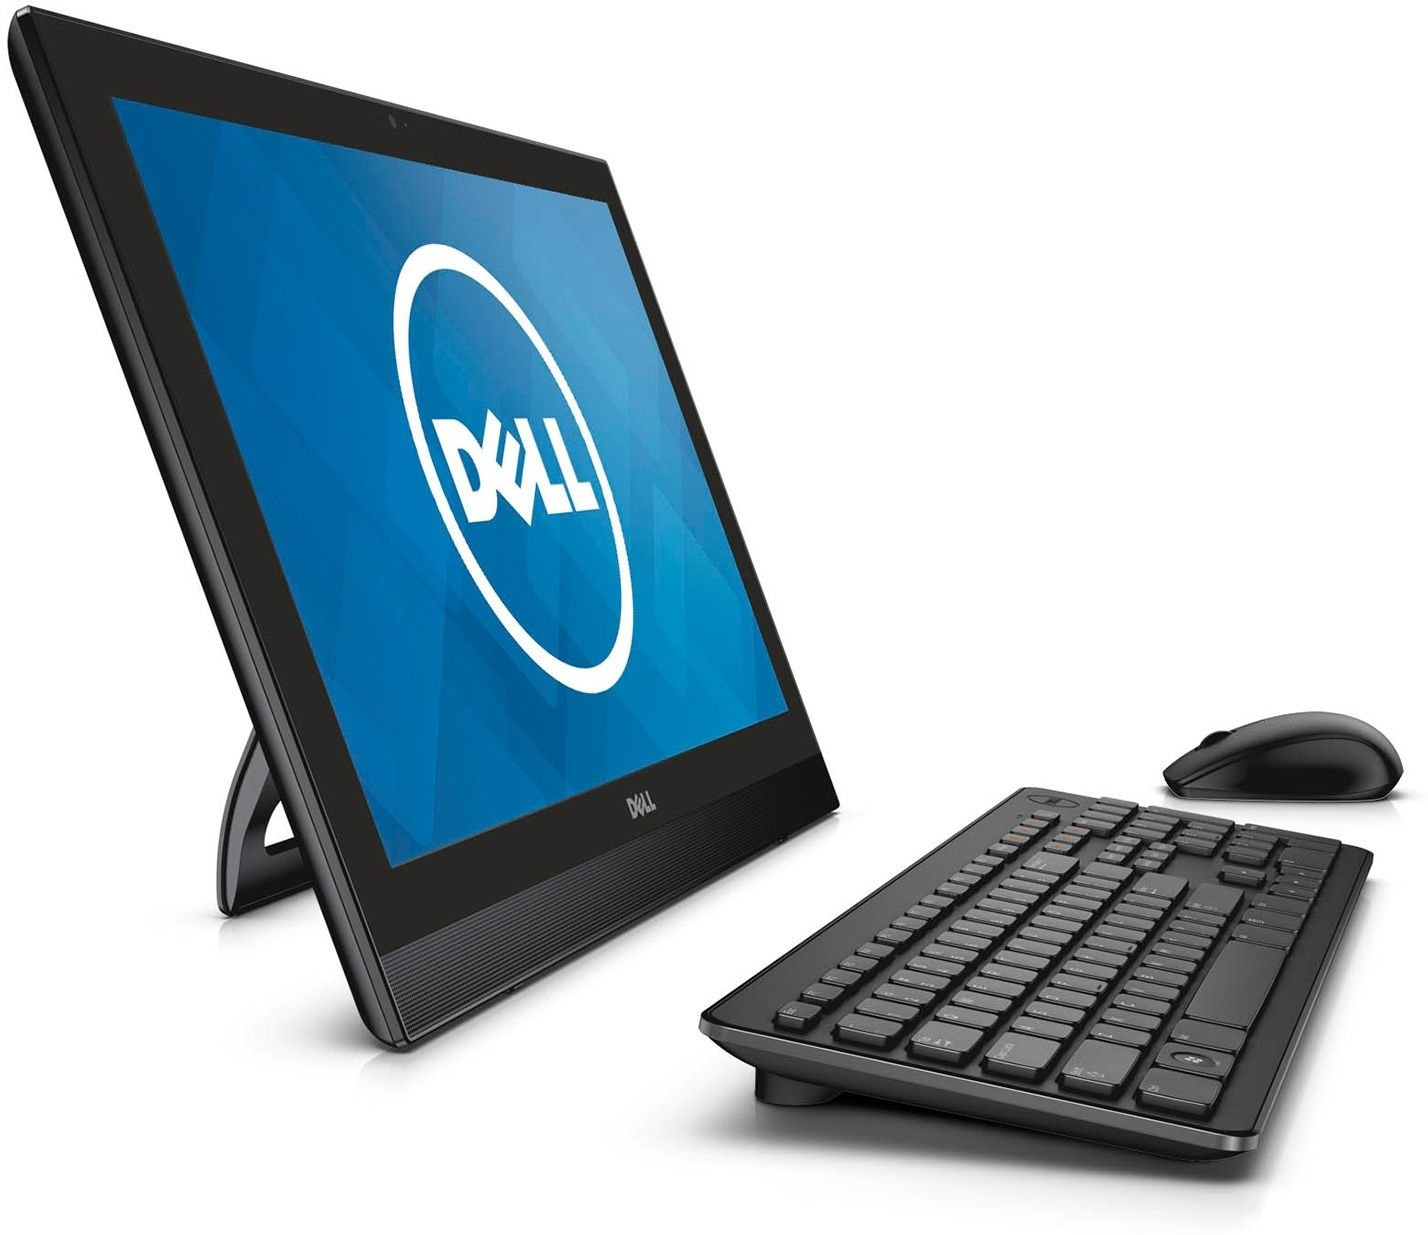 View Dell - (Pentium Quad Core/2 GB DDR3/500 GB/Windows 8.1)(Black, 48.95 cm x 31.26 cm x 2.58 cm, 3.1 kg, 19.5 Inch Screen) Desktop Computer Price Online(Dell)